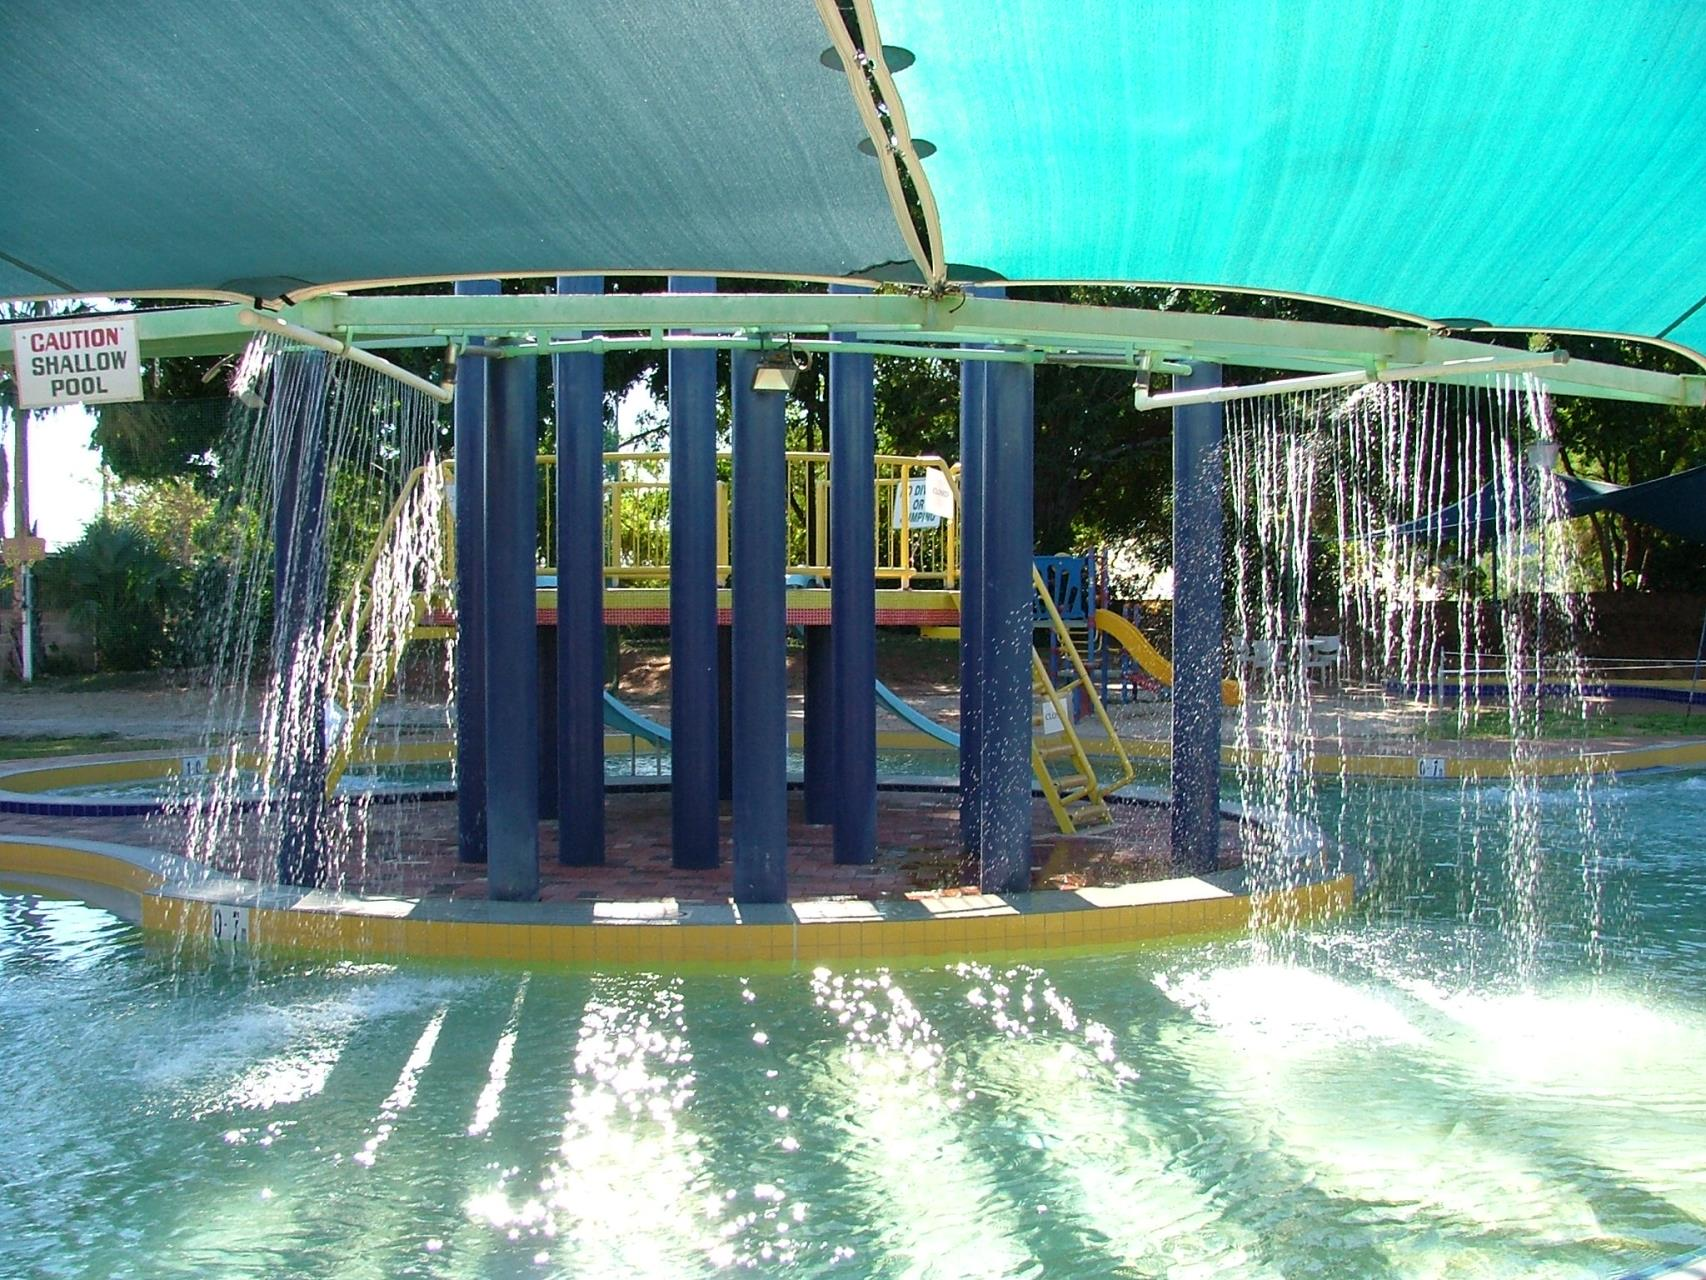 Temporary Changes to Kununurra Swimming Pool Opening Hours